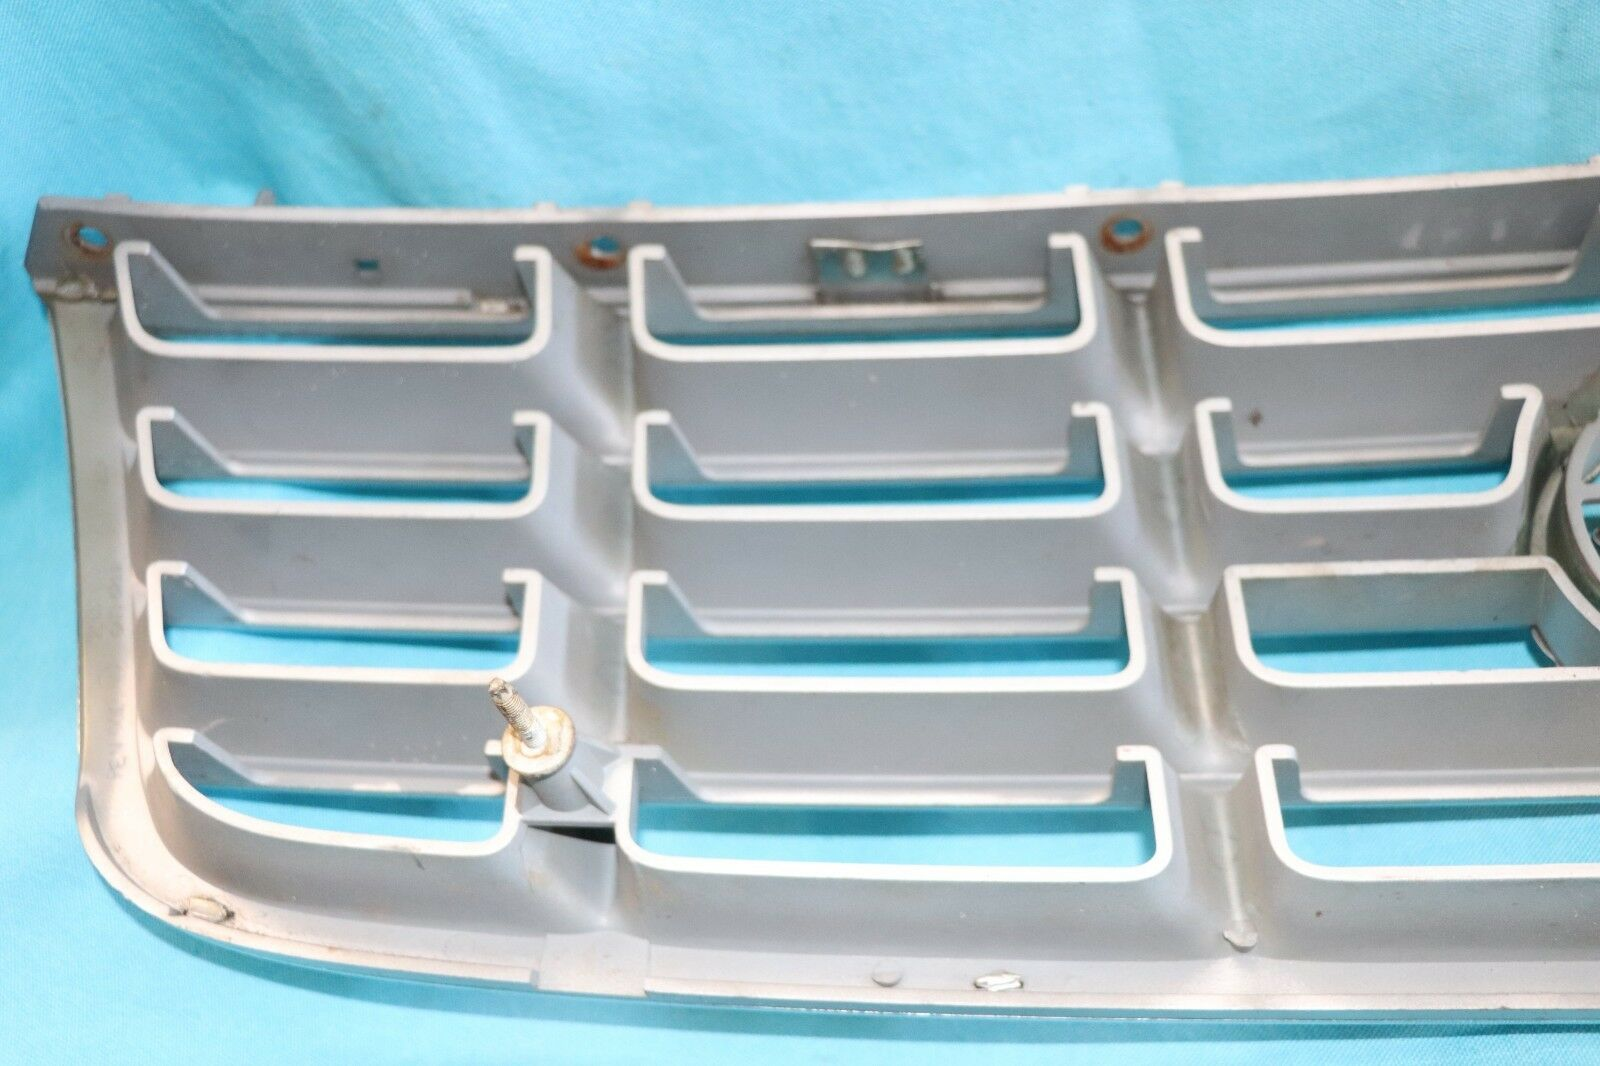 98 99 00 01 02 03 04 CADILLAC SEVILLE STS SLS GRILLE GRILLE  grey 25719530 25719530 25719530